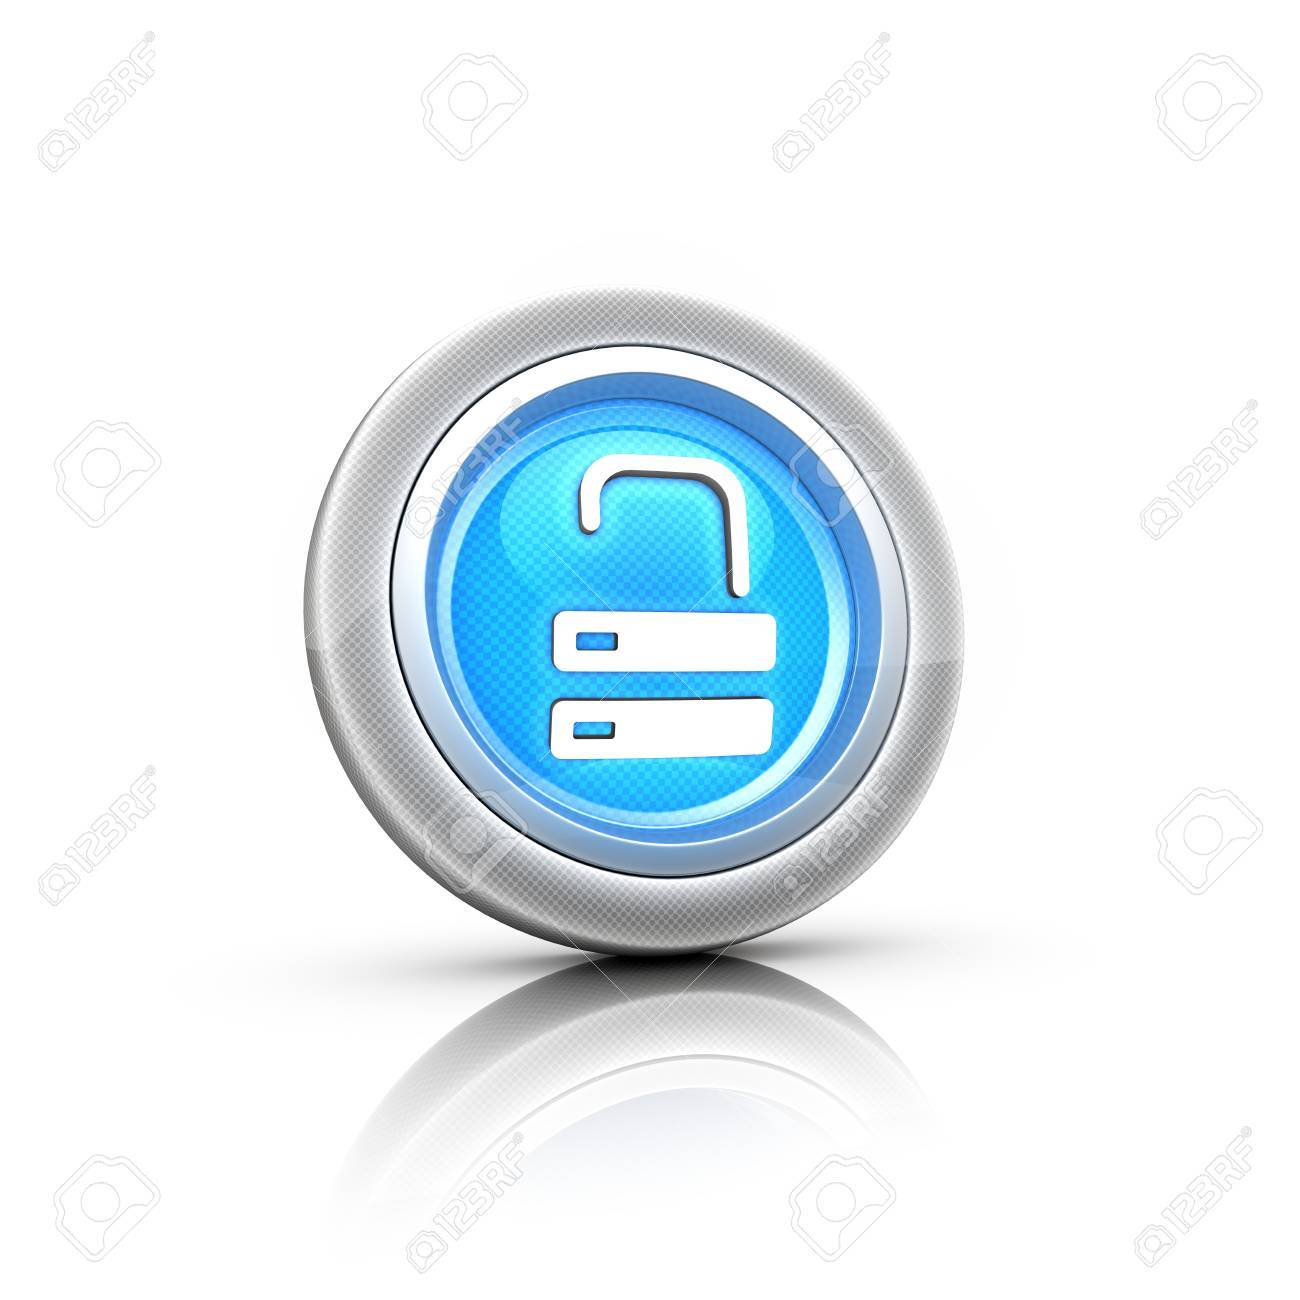 Red lock button Stock Photo - 18481644